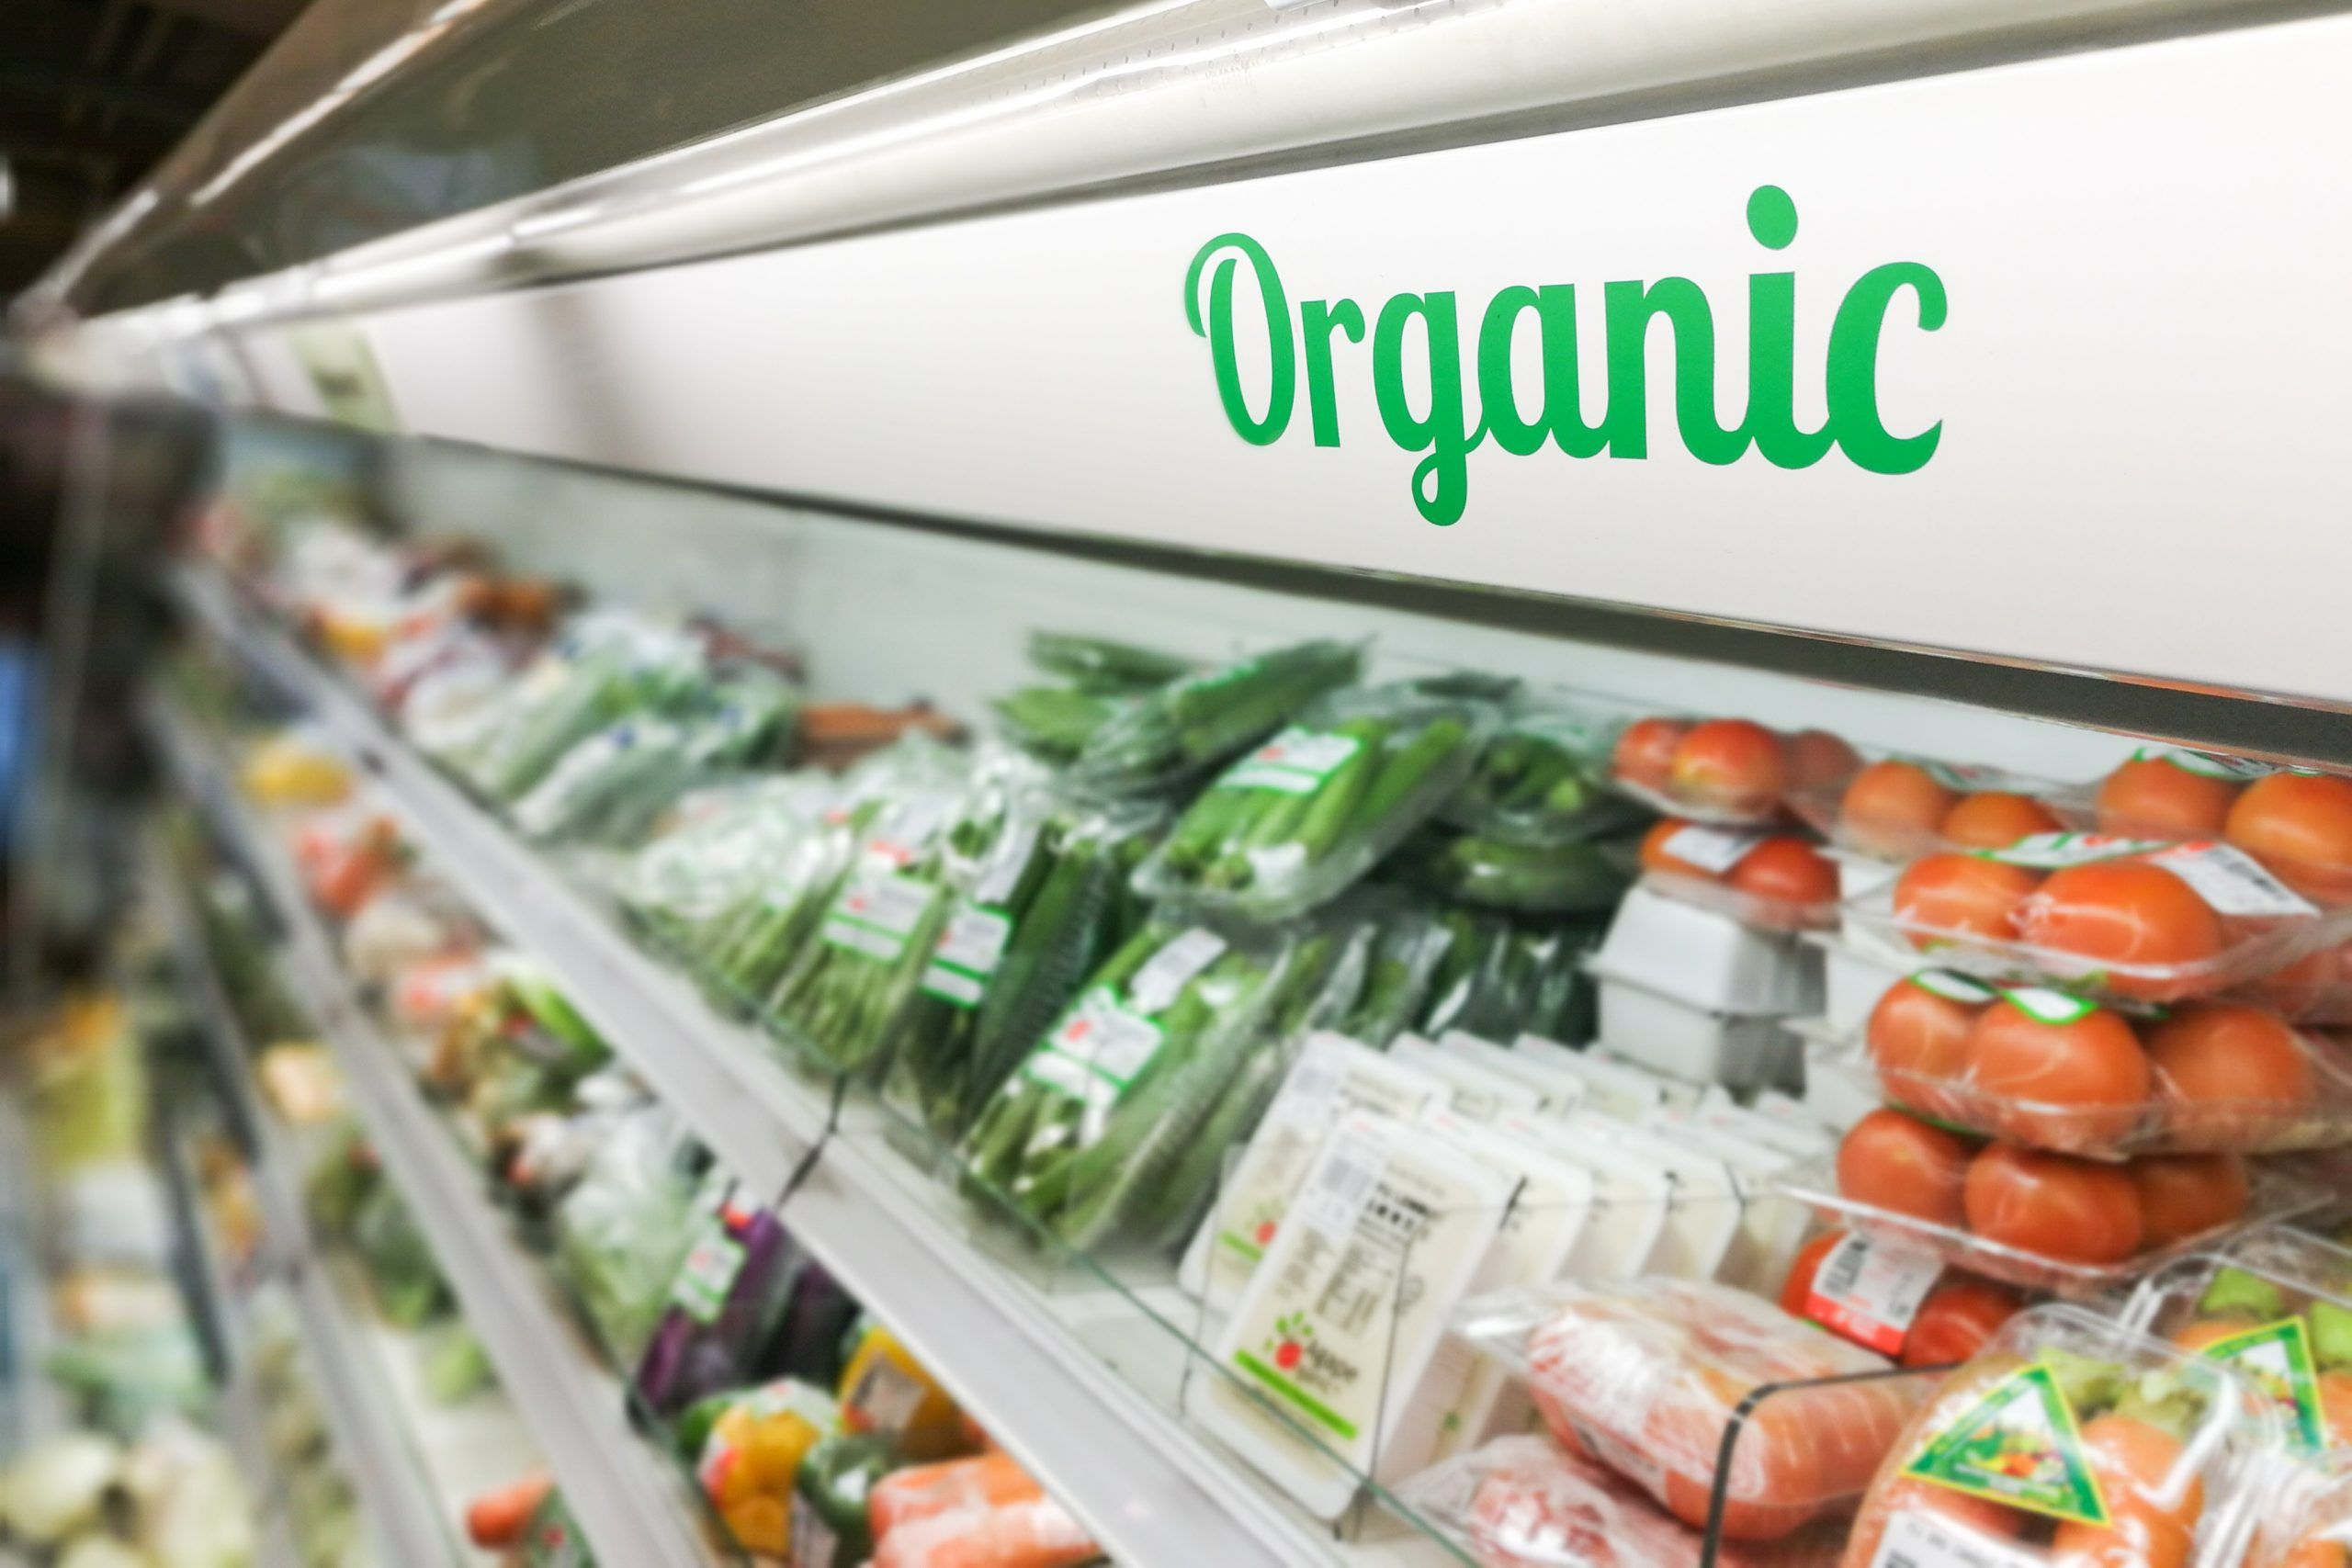 Photo of organic section in grocery store